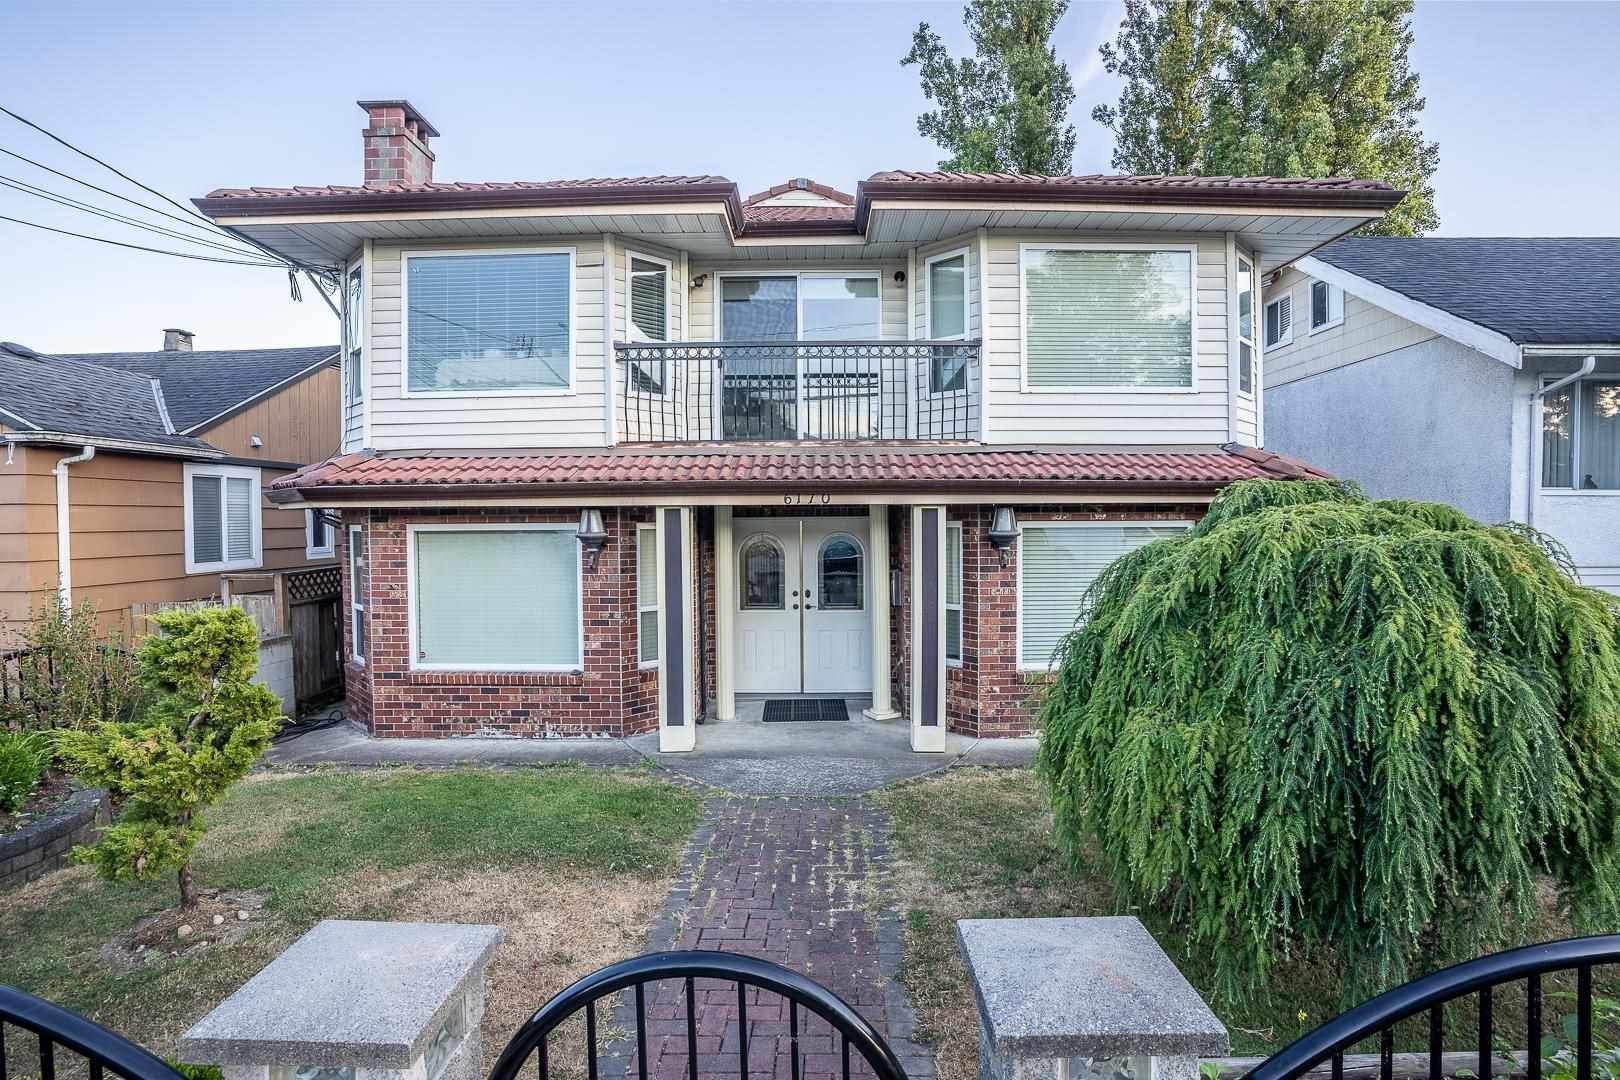 Main Photo: 6170 RUMBLE Street in Burnaby: South Slope House for sale (Burnaby South)  : MLS®# R2603049